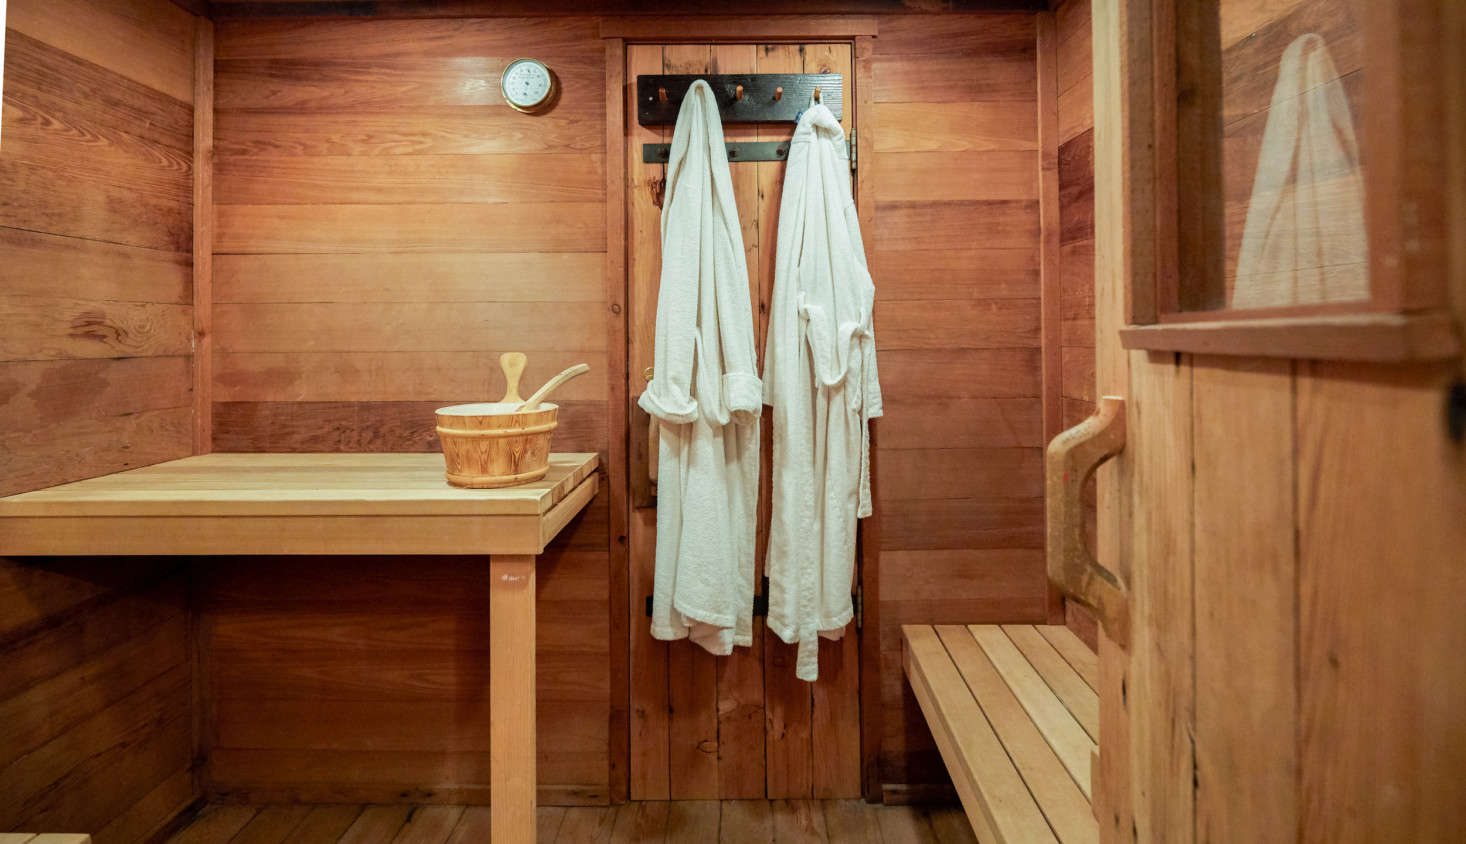 For rustic relaxation, the cabin also has a sauna and outdoor hot tub.